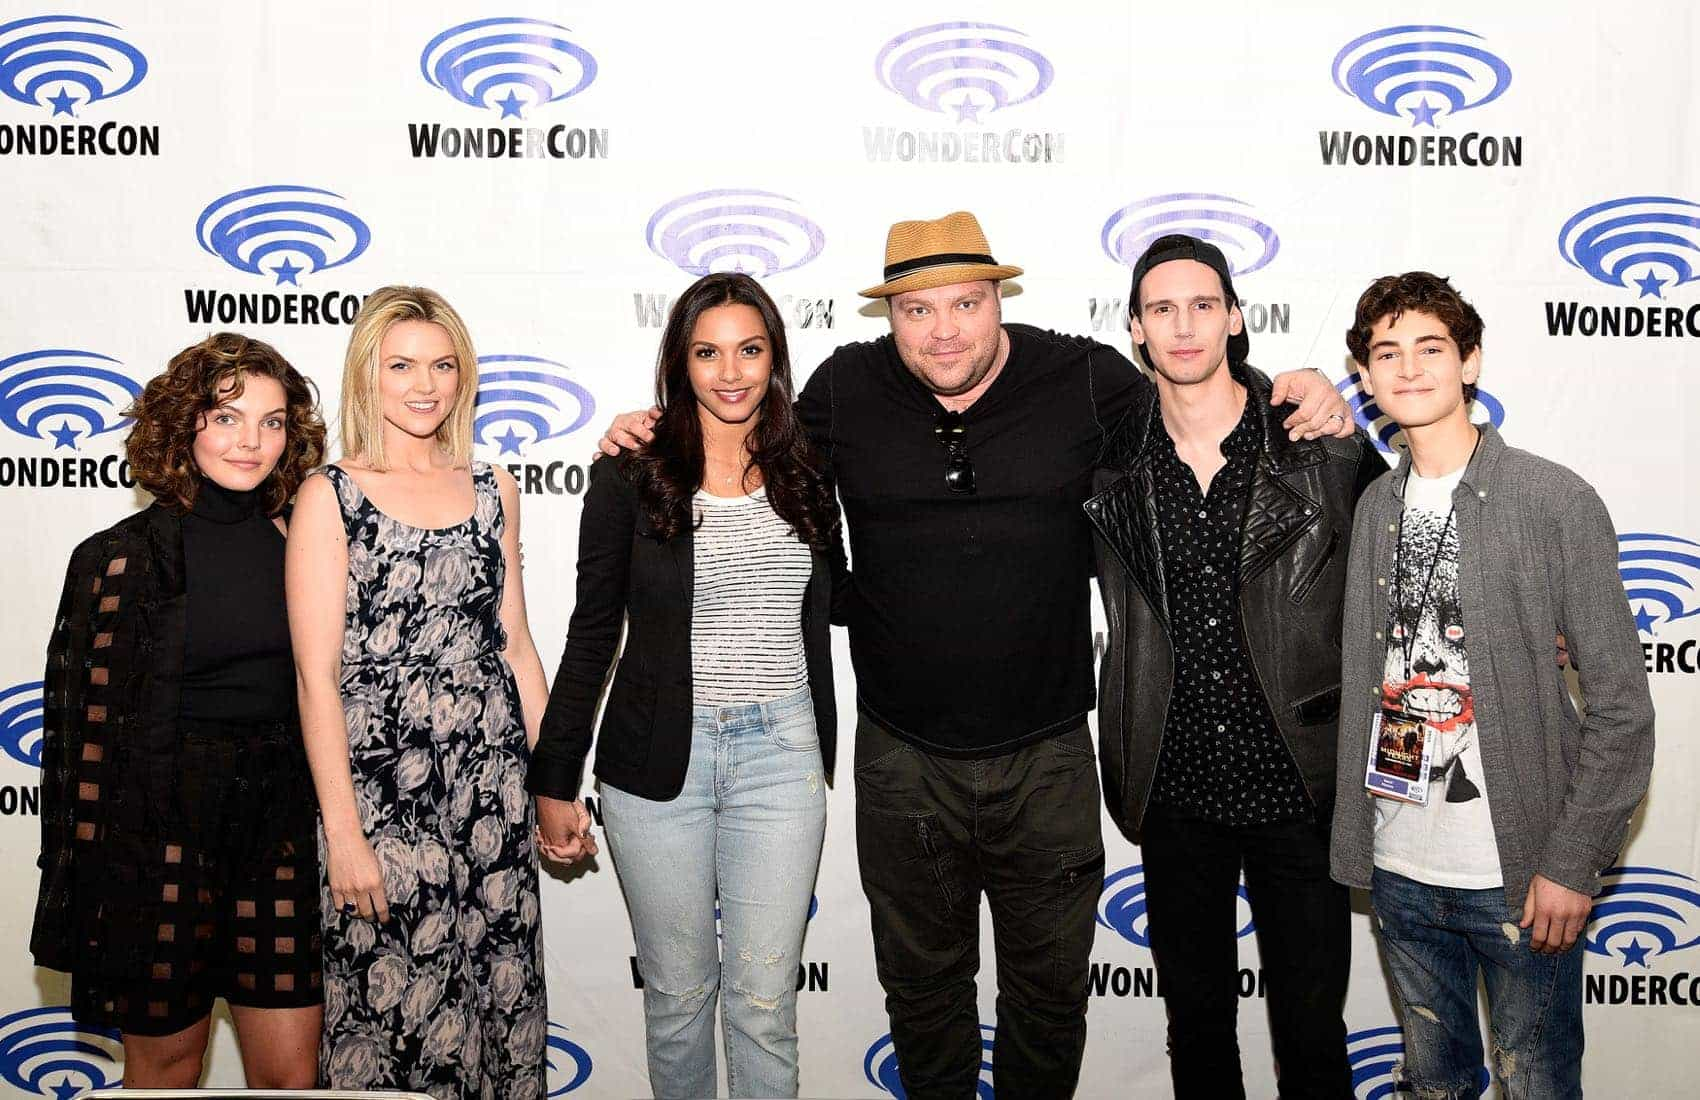 Gotham cast members Camren Bicondova, Erin Richards, Jessica Lucas, Drew Powell, Cory Michael Smith and David Mazouz